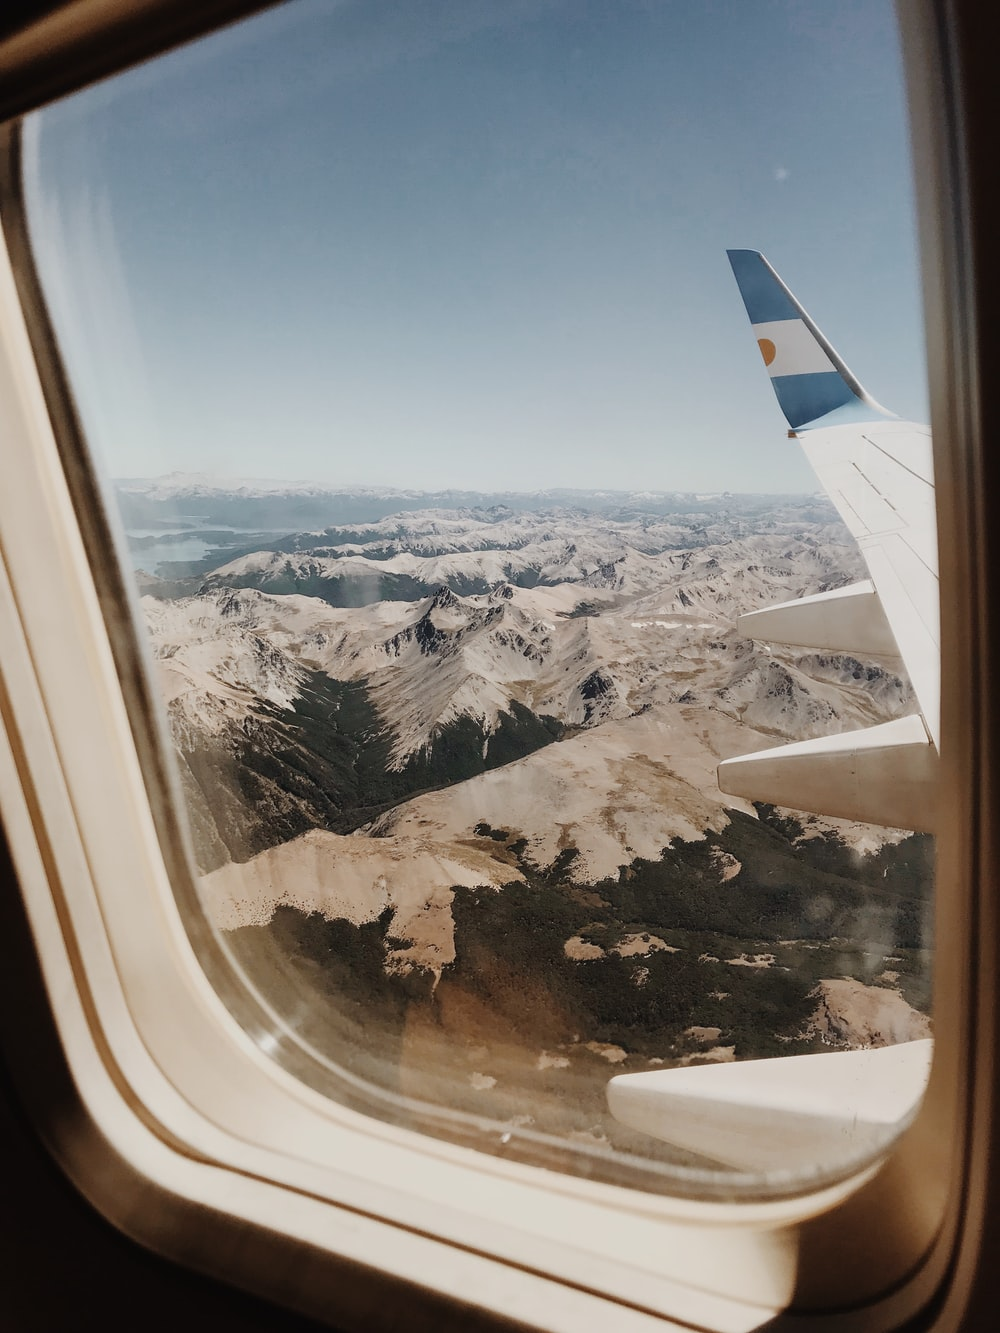 person taking picture of mountains inside airplane